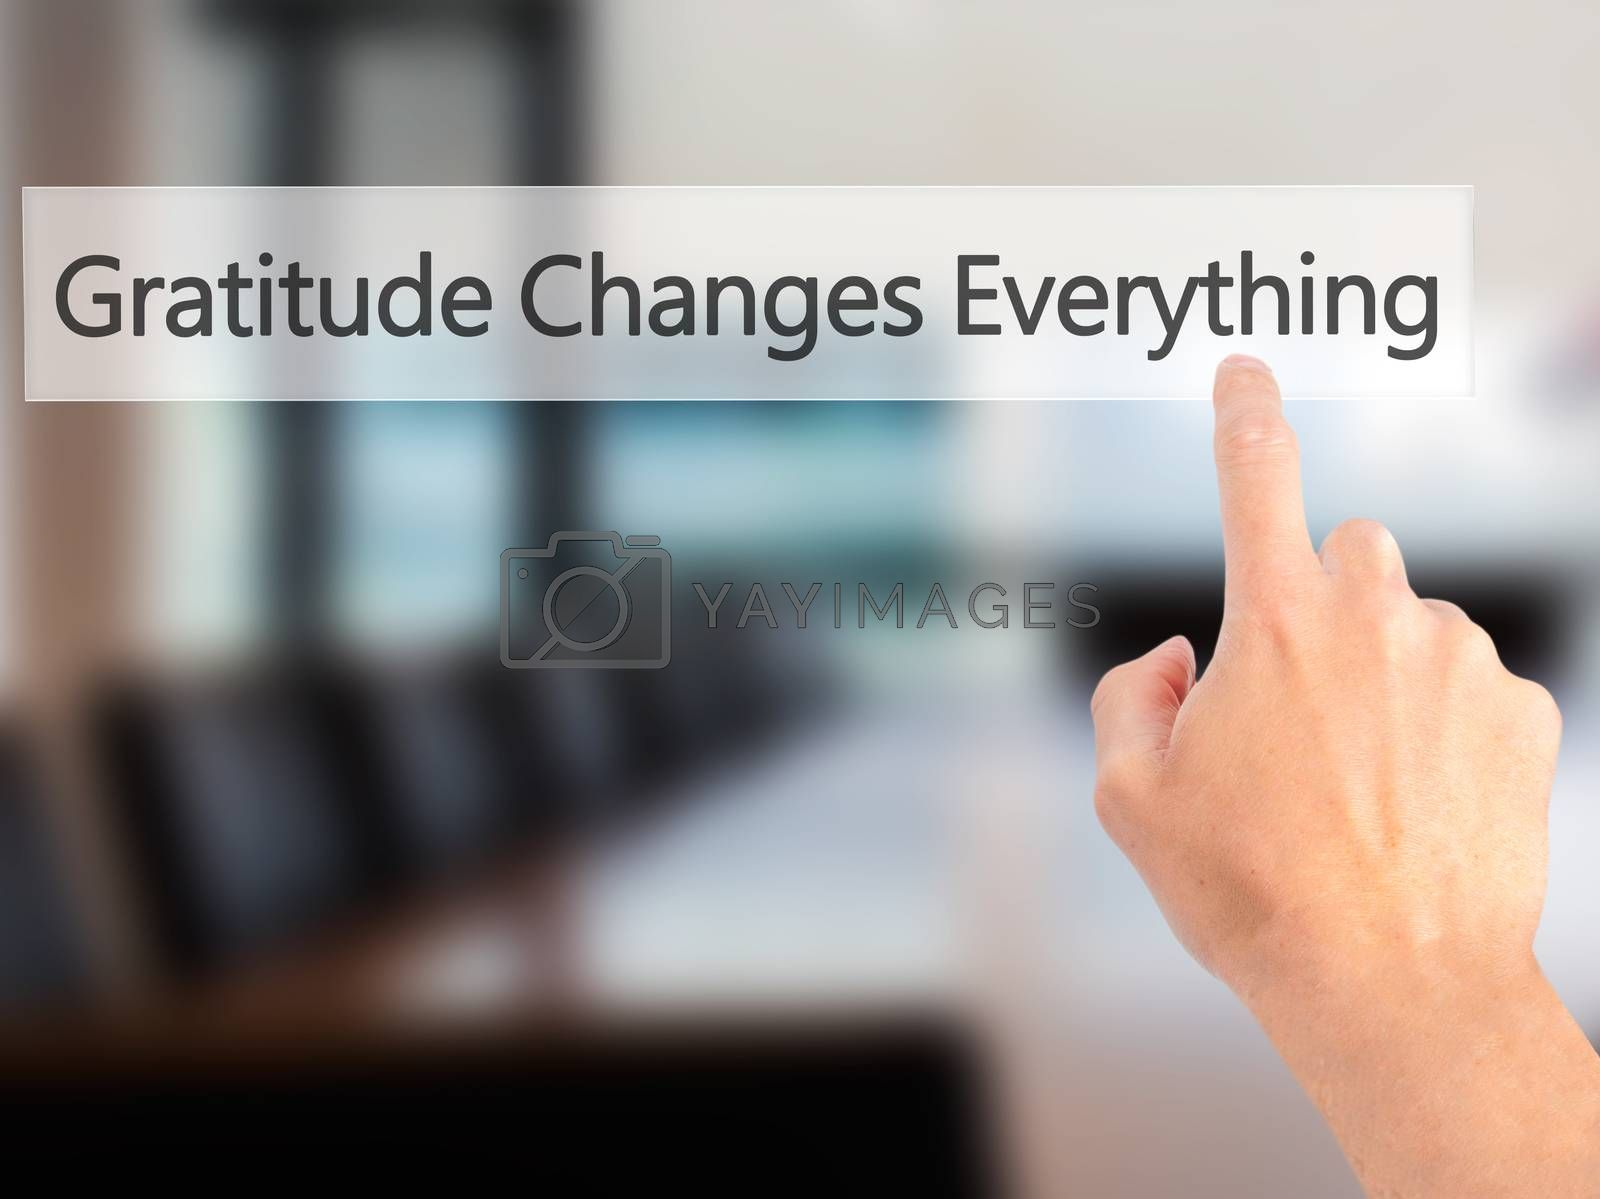 Gratitude Changes Everything - Hand pressing a button on blurred by netsay.net